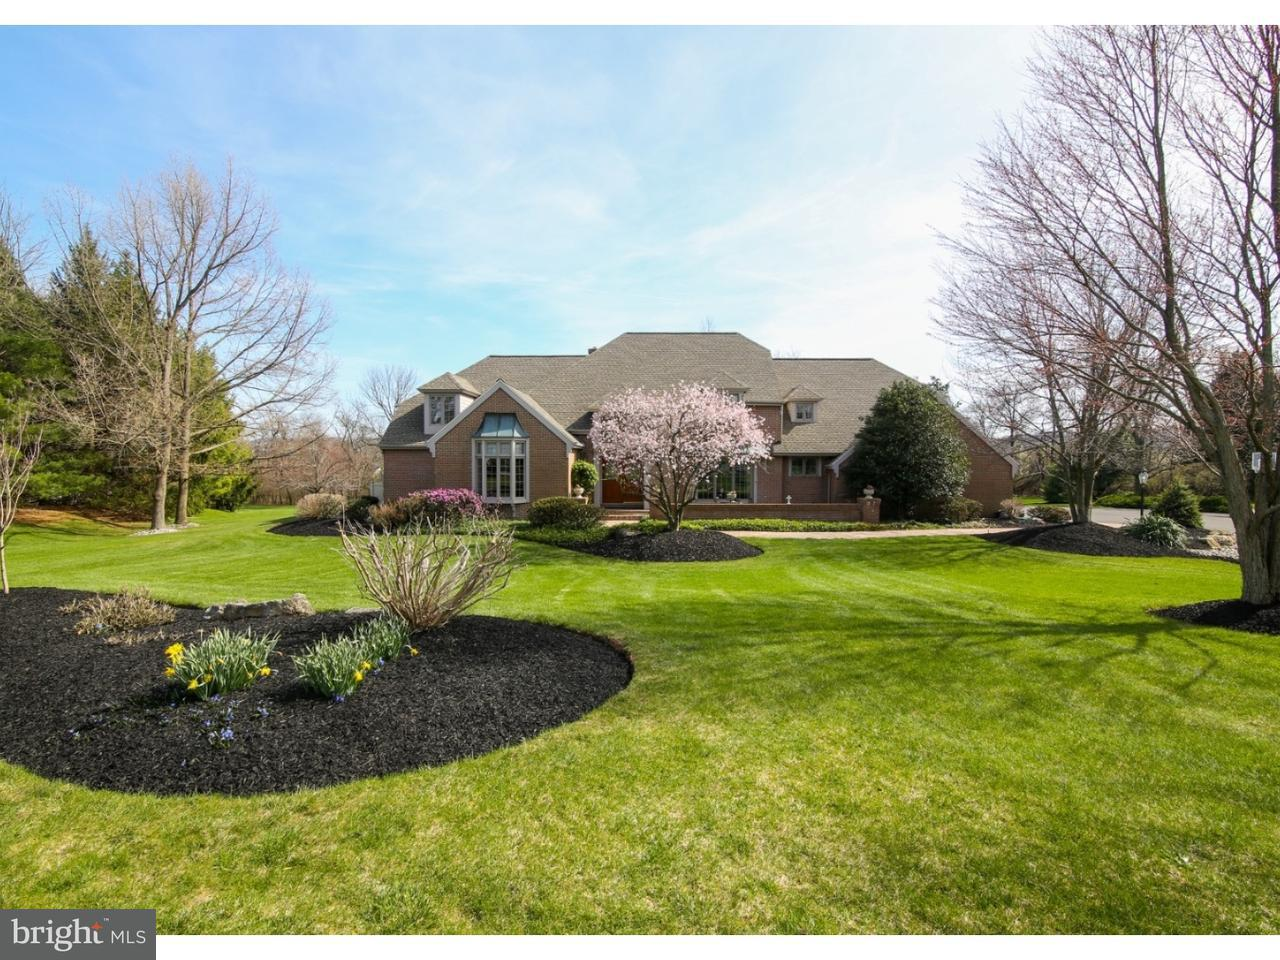 Single Family Home for Sale at 1740 DEER RUN Road Bethlehem, Pennsylvania 18015 United States